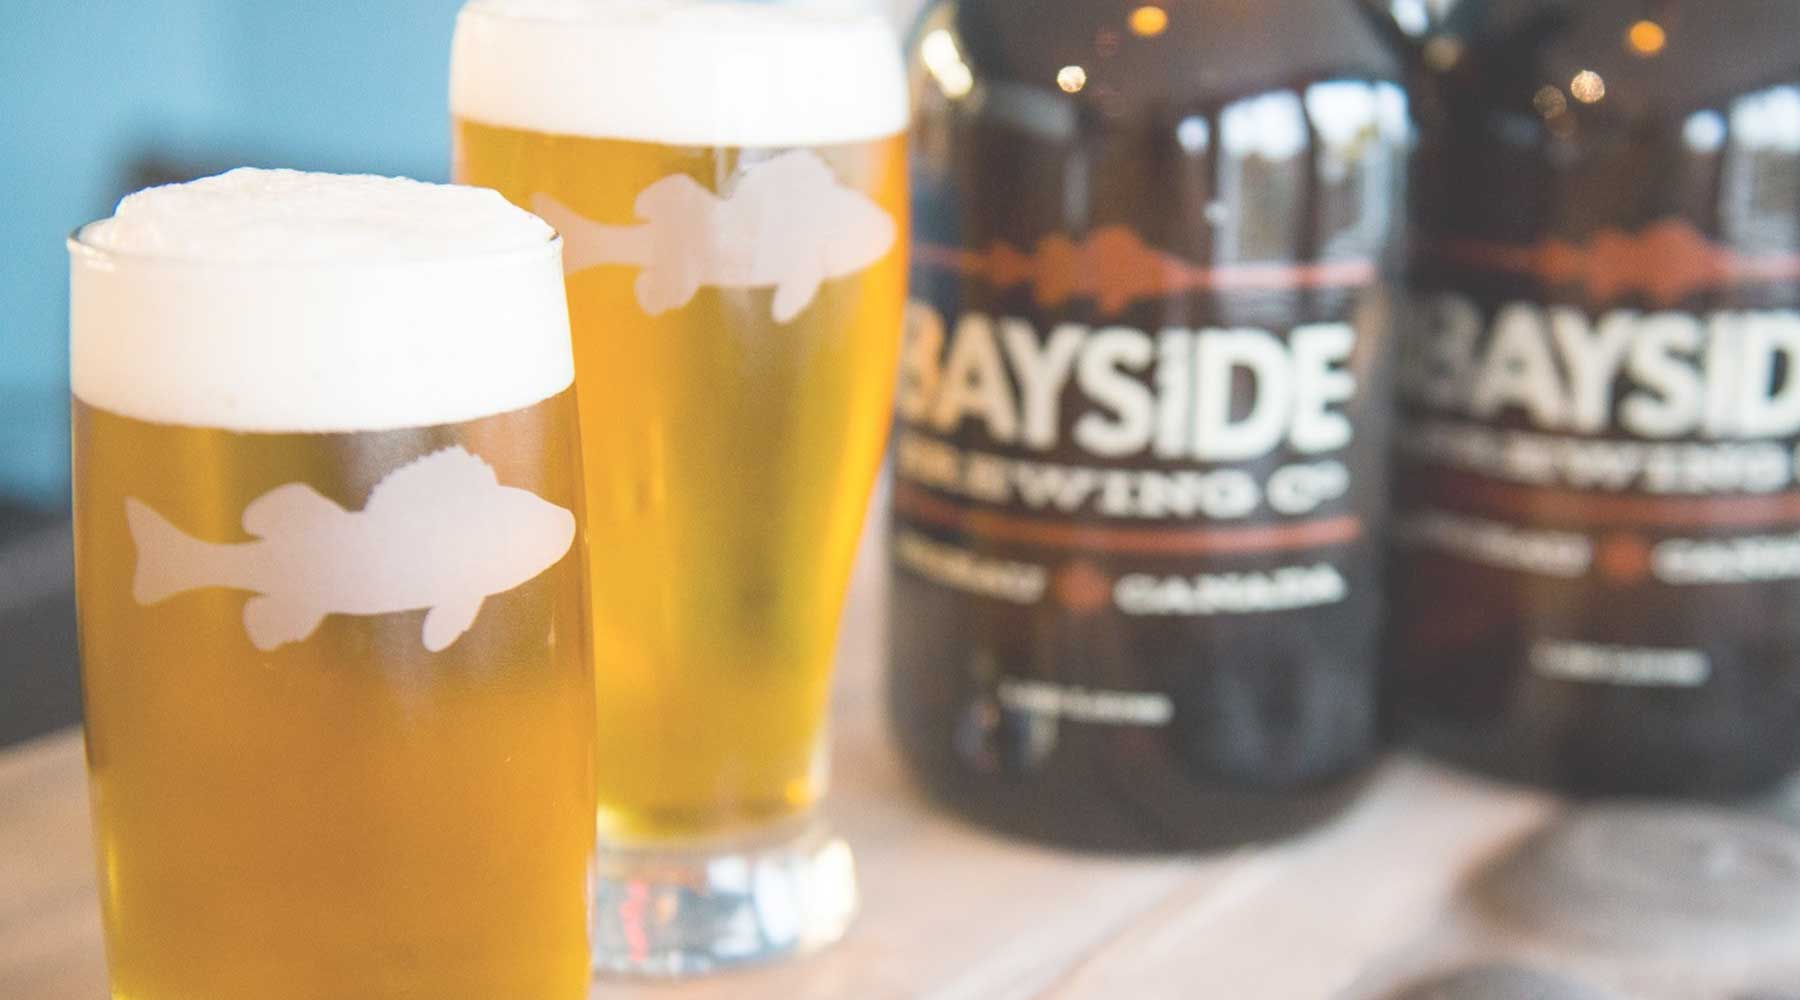 Bayside Brewing Company | Just Wine